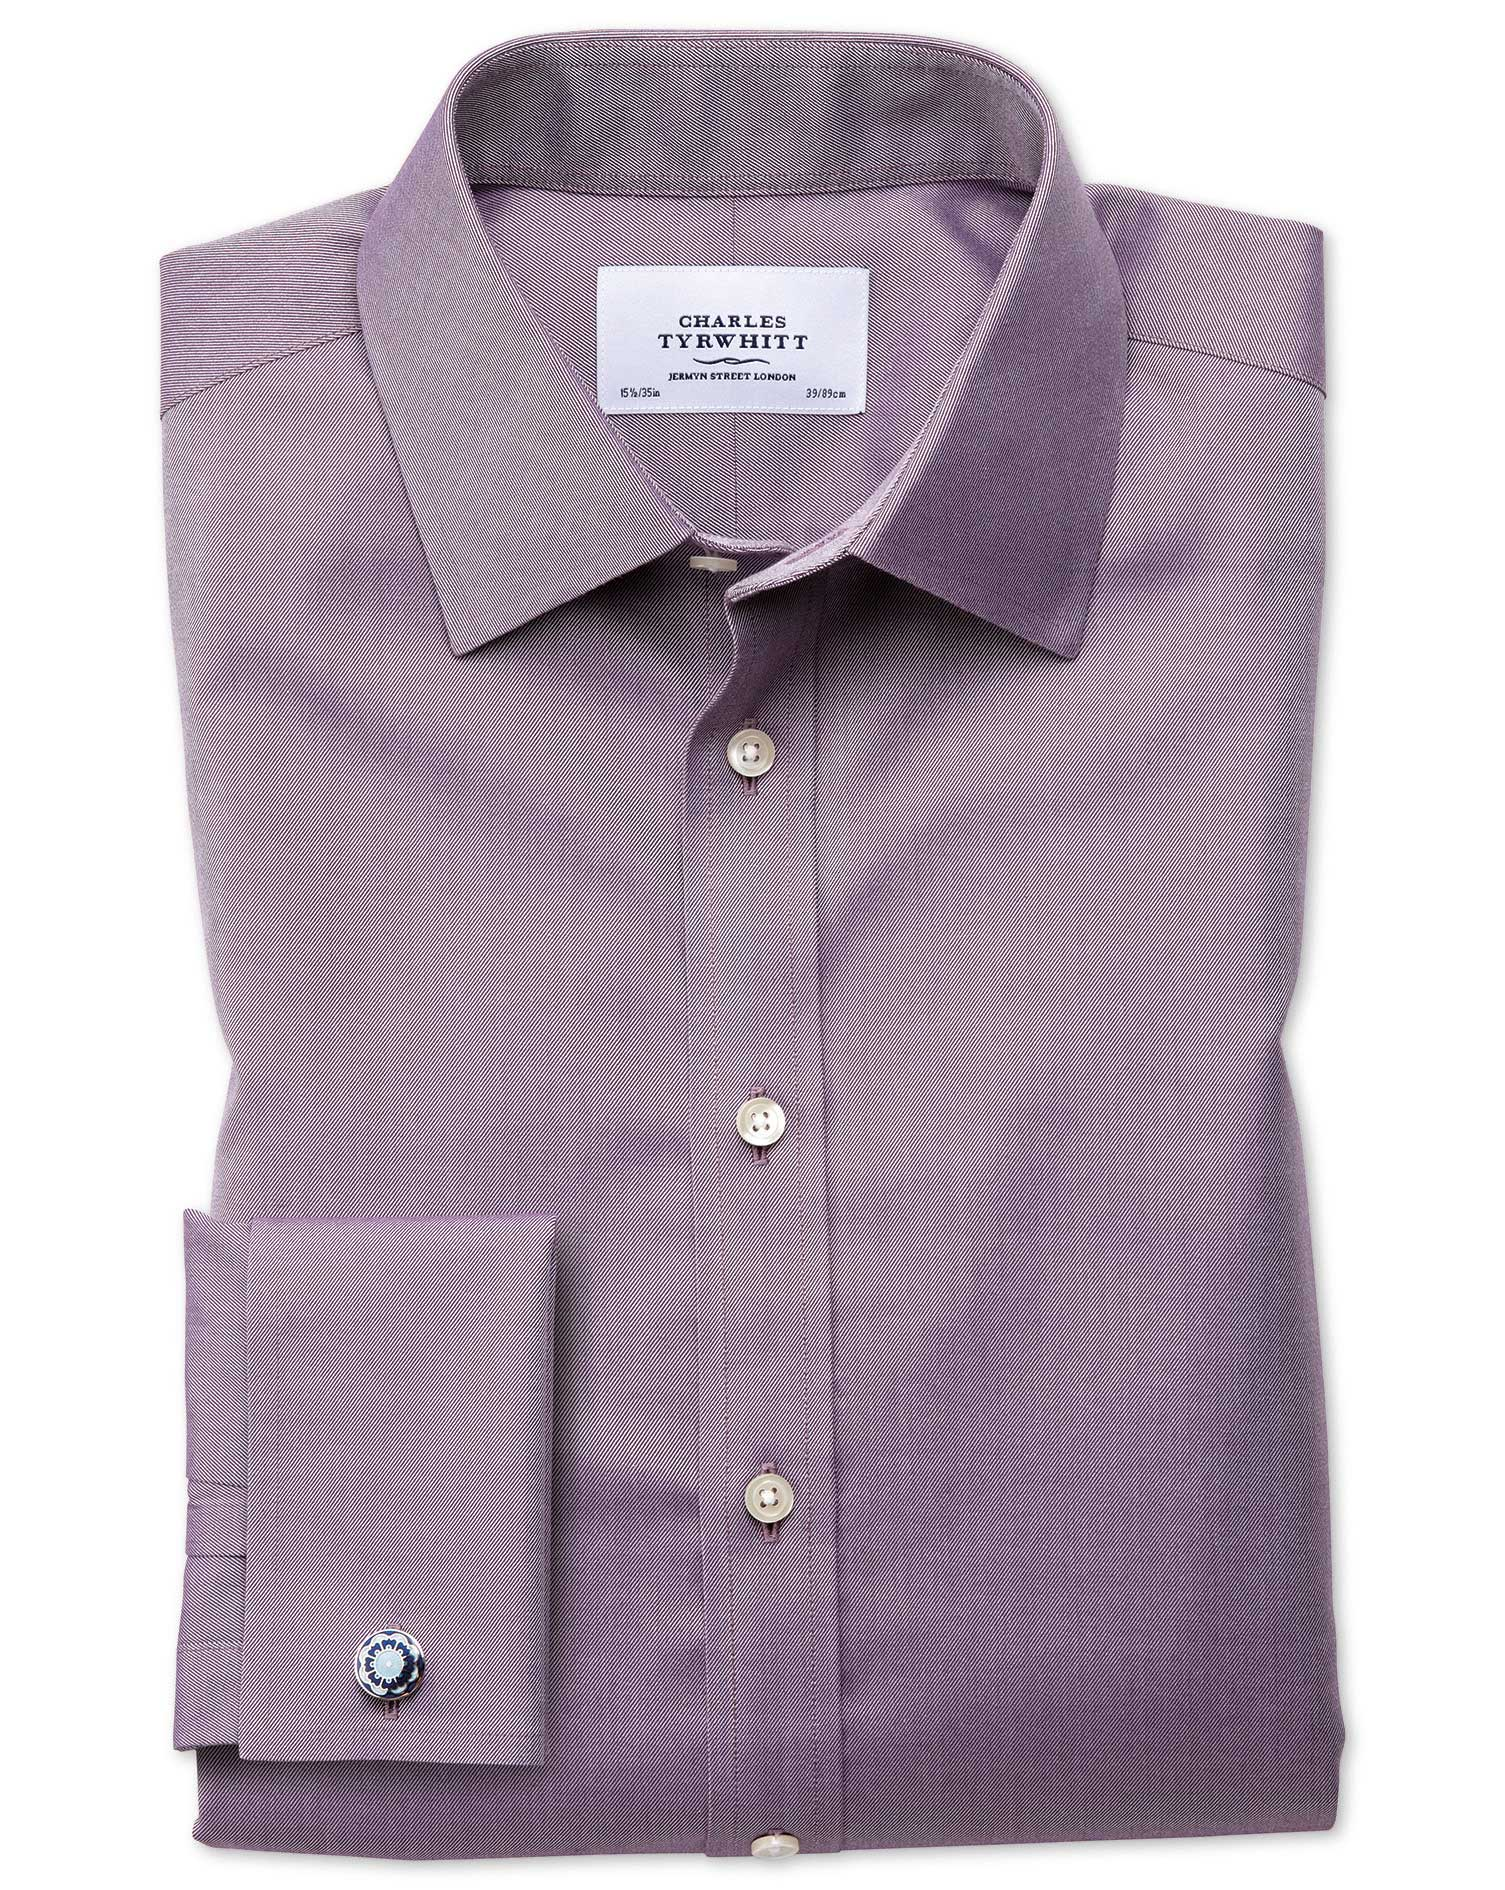 Classic Fit Non-Iron Twill Dark Purple Cotton Formal Shirt Double Cuff Size 16/35 by Charles Tyrwhit